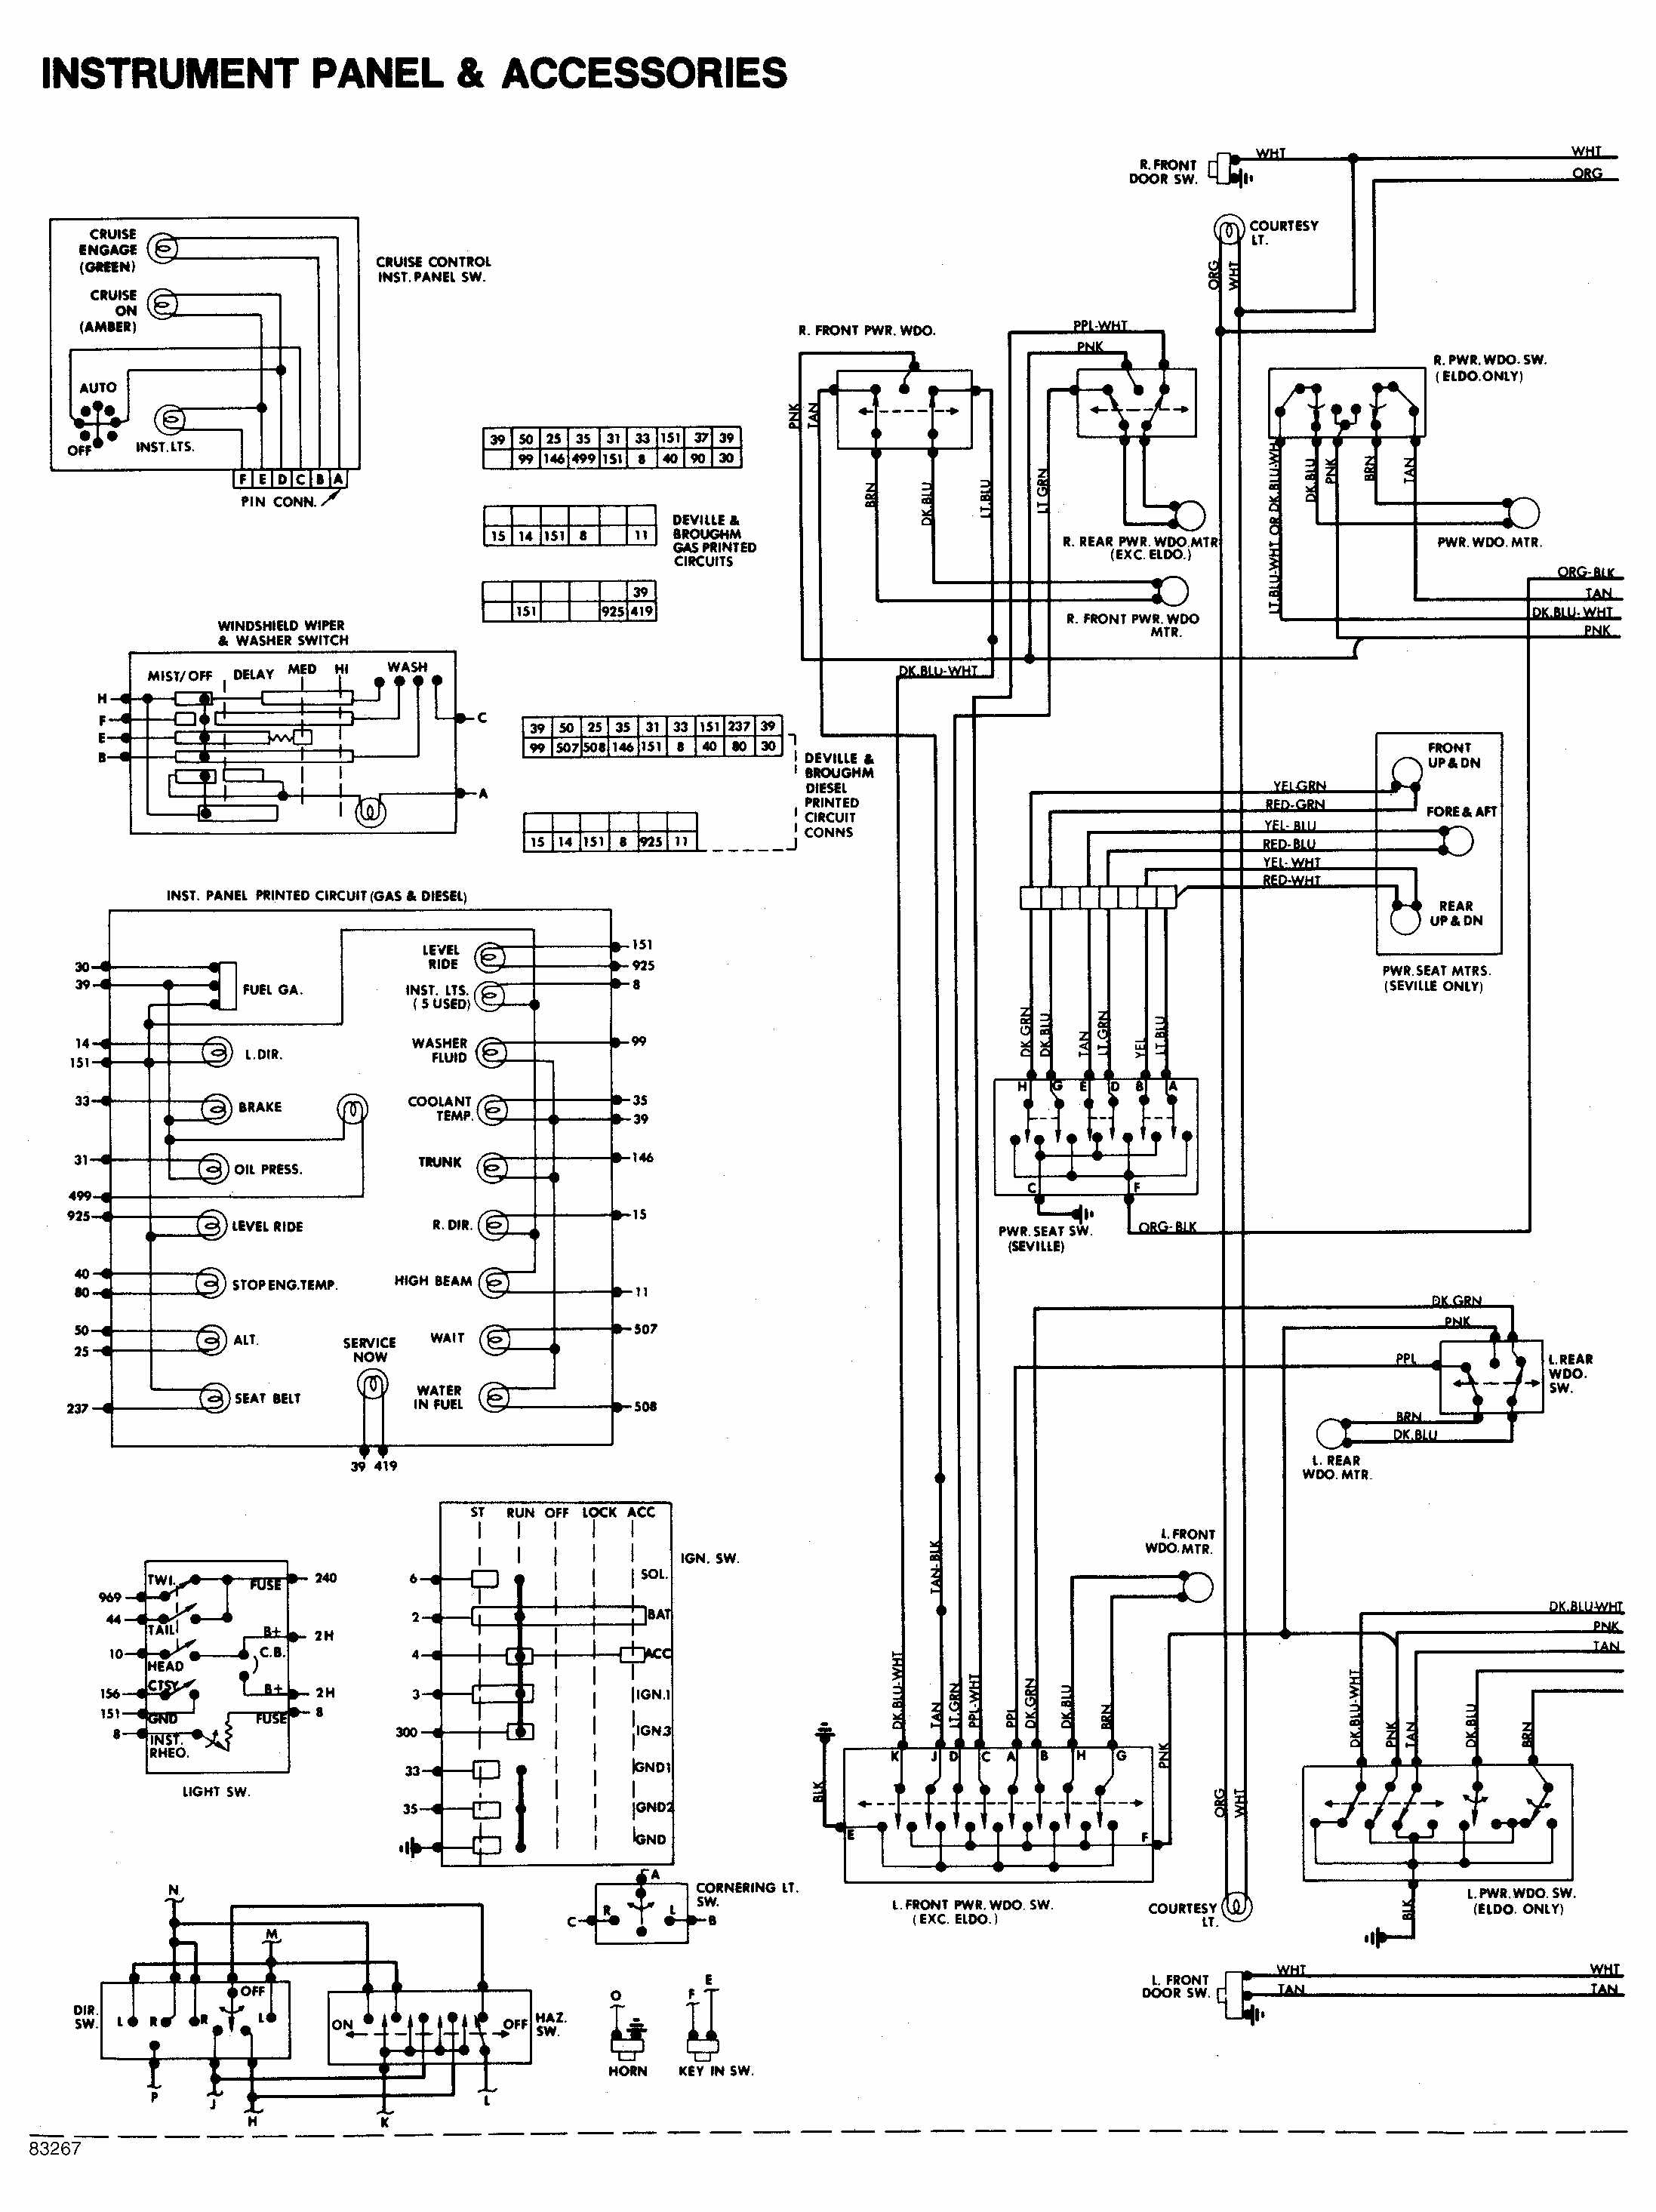 1968 C10 Fuse Box Diagram Wiring Schematic Detailed 68 Chevy Harness Mustang Steering Column Also El Camino 1985 Starter Switch